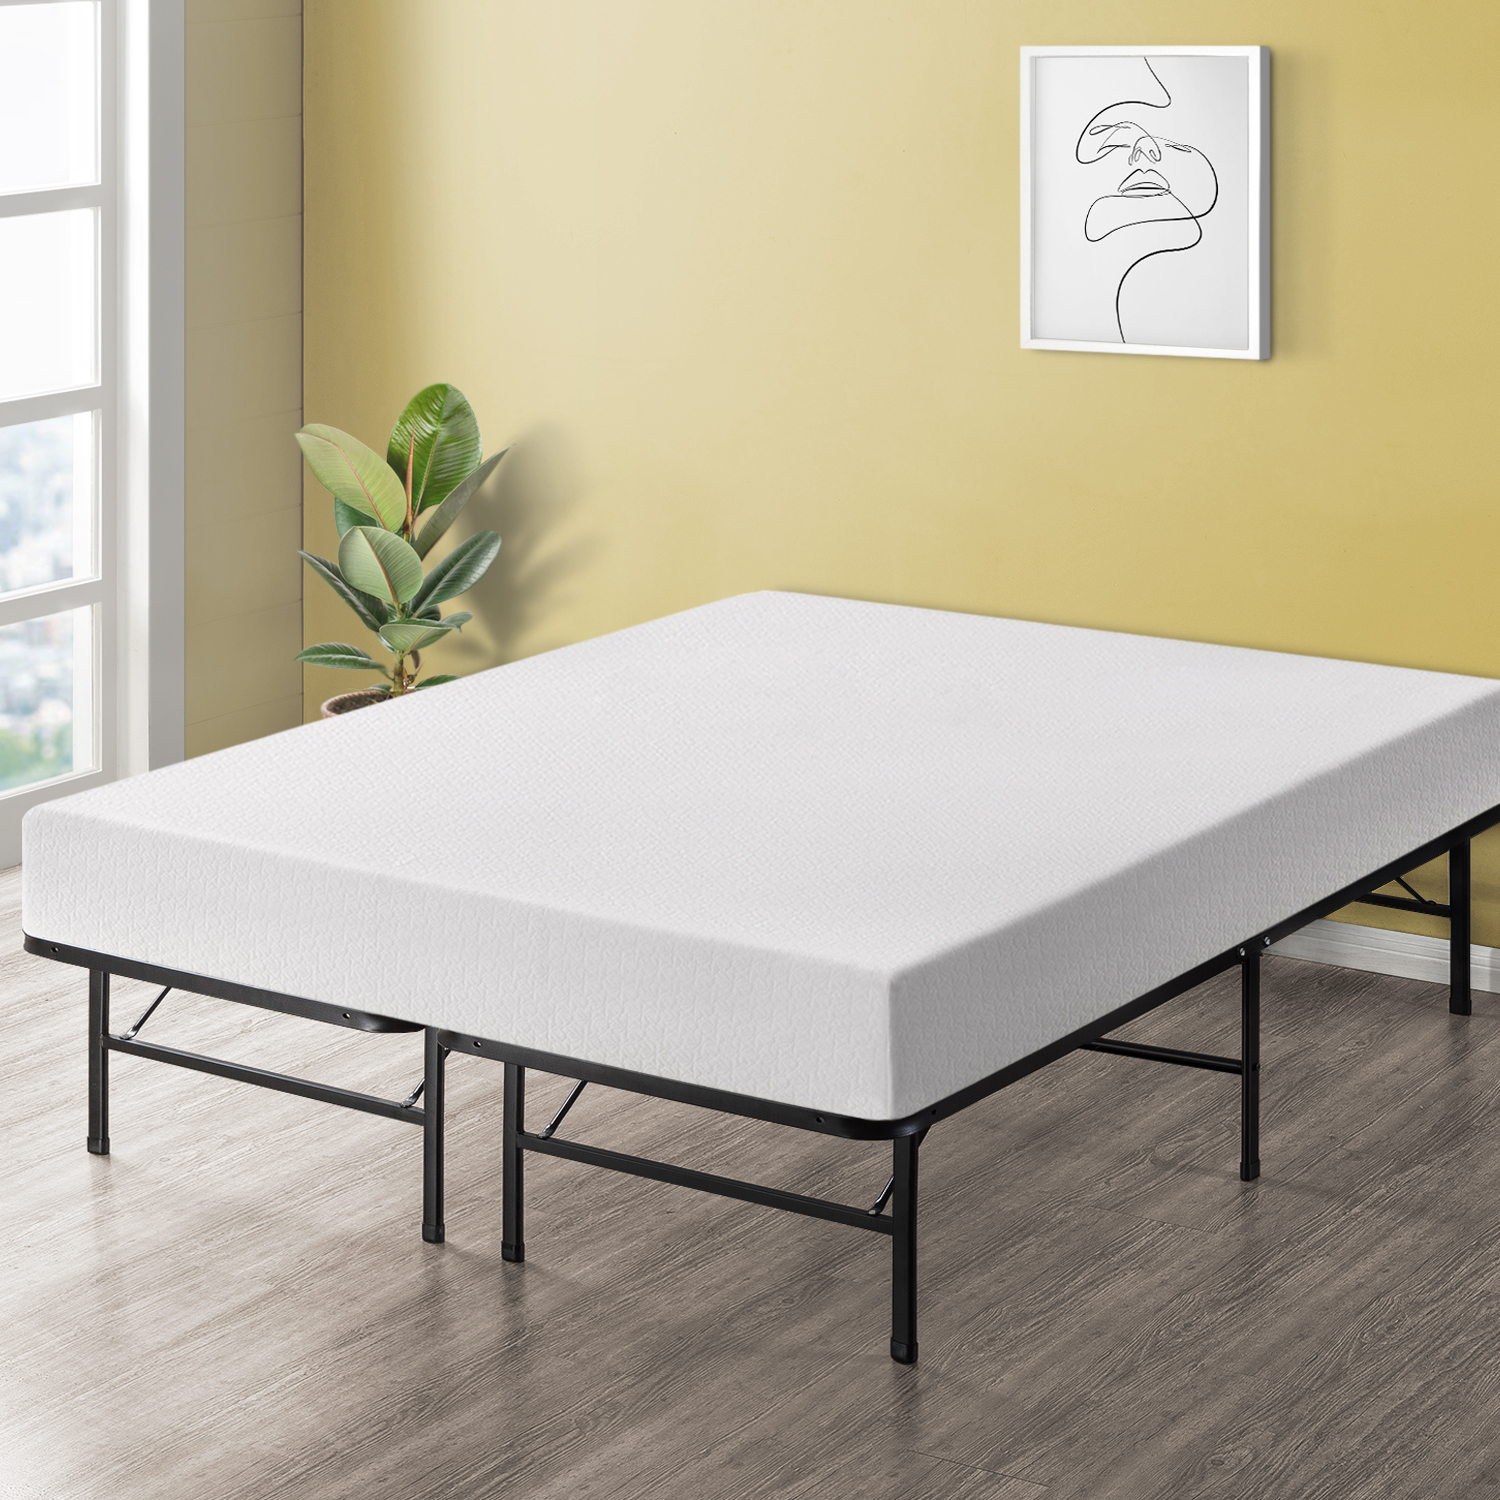 Best Price Mattress 10 Inch Memory Foam Mattress - Walmart.com